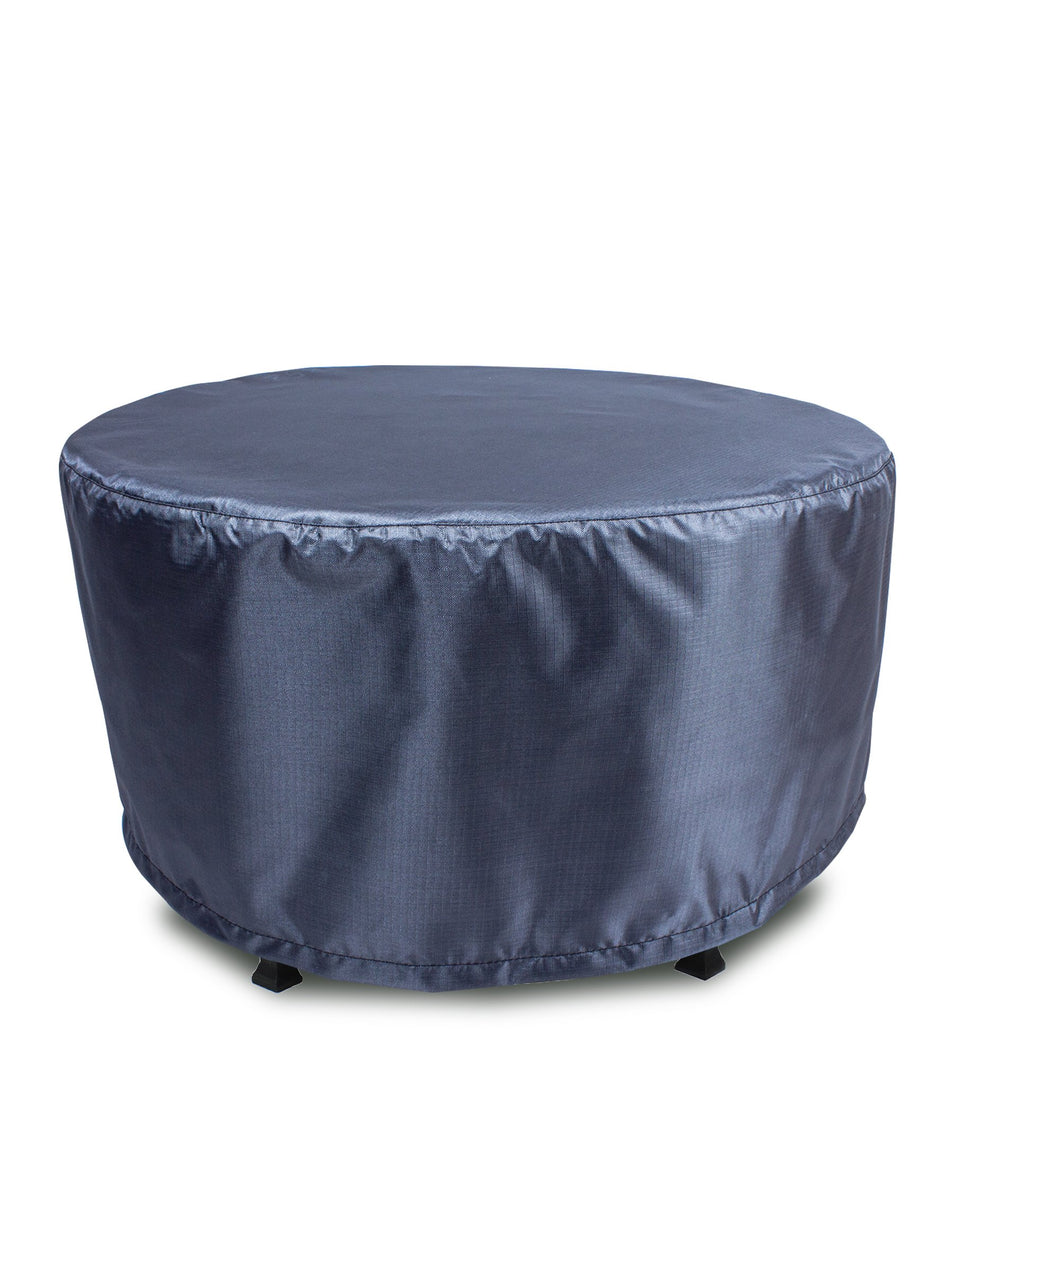 Fire Table Cover Round - 53